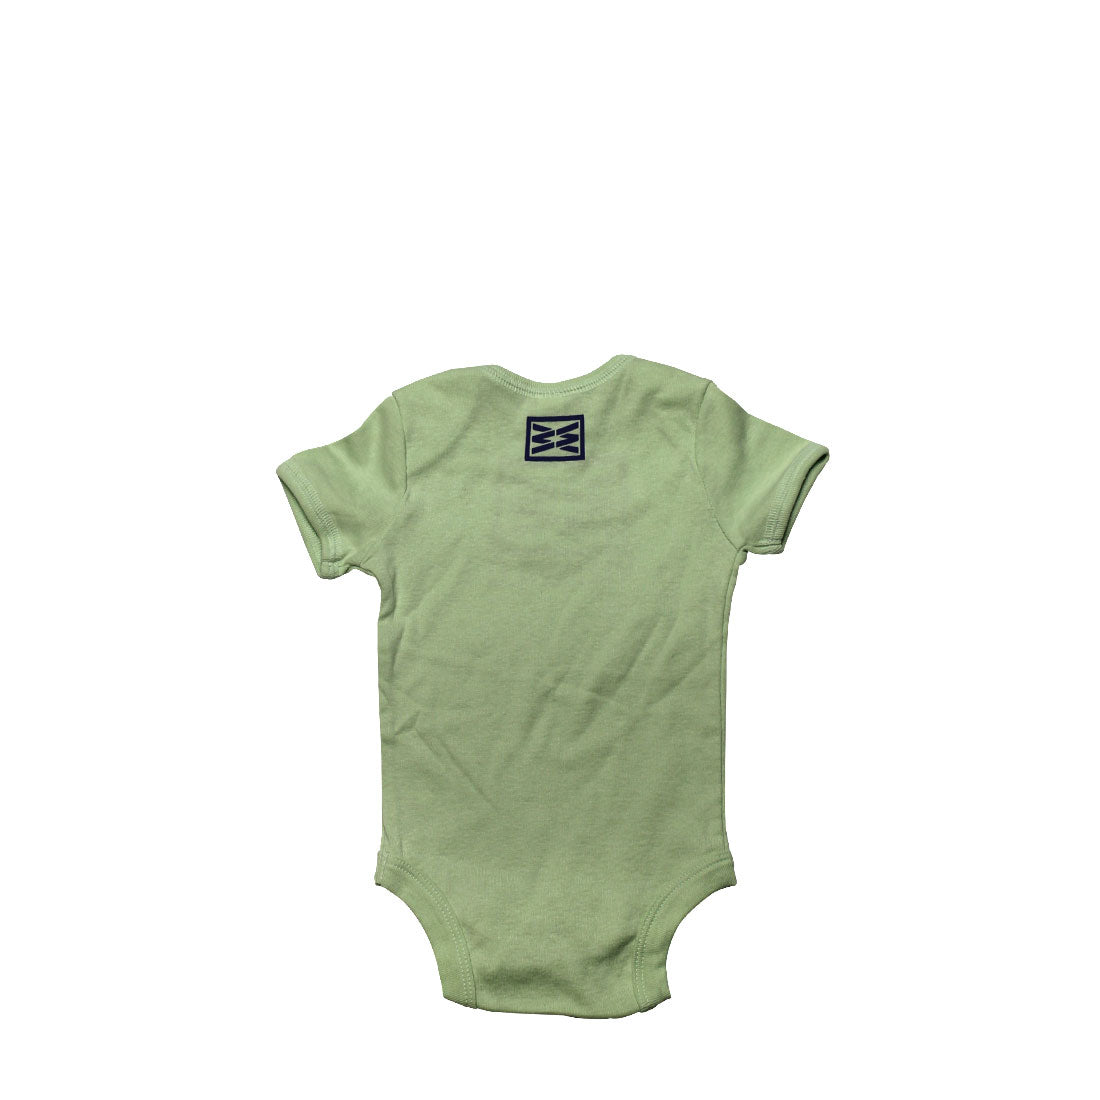 RIZNWILD | adorable baby romper back view with small logo screen printed.